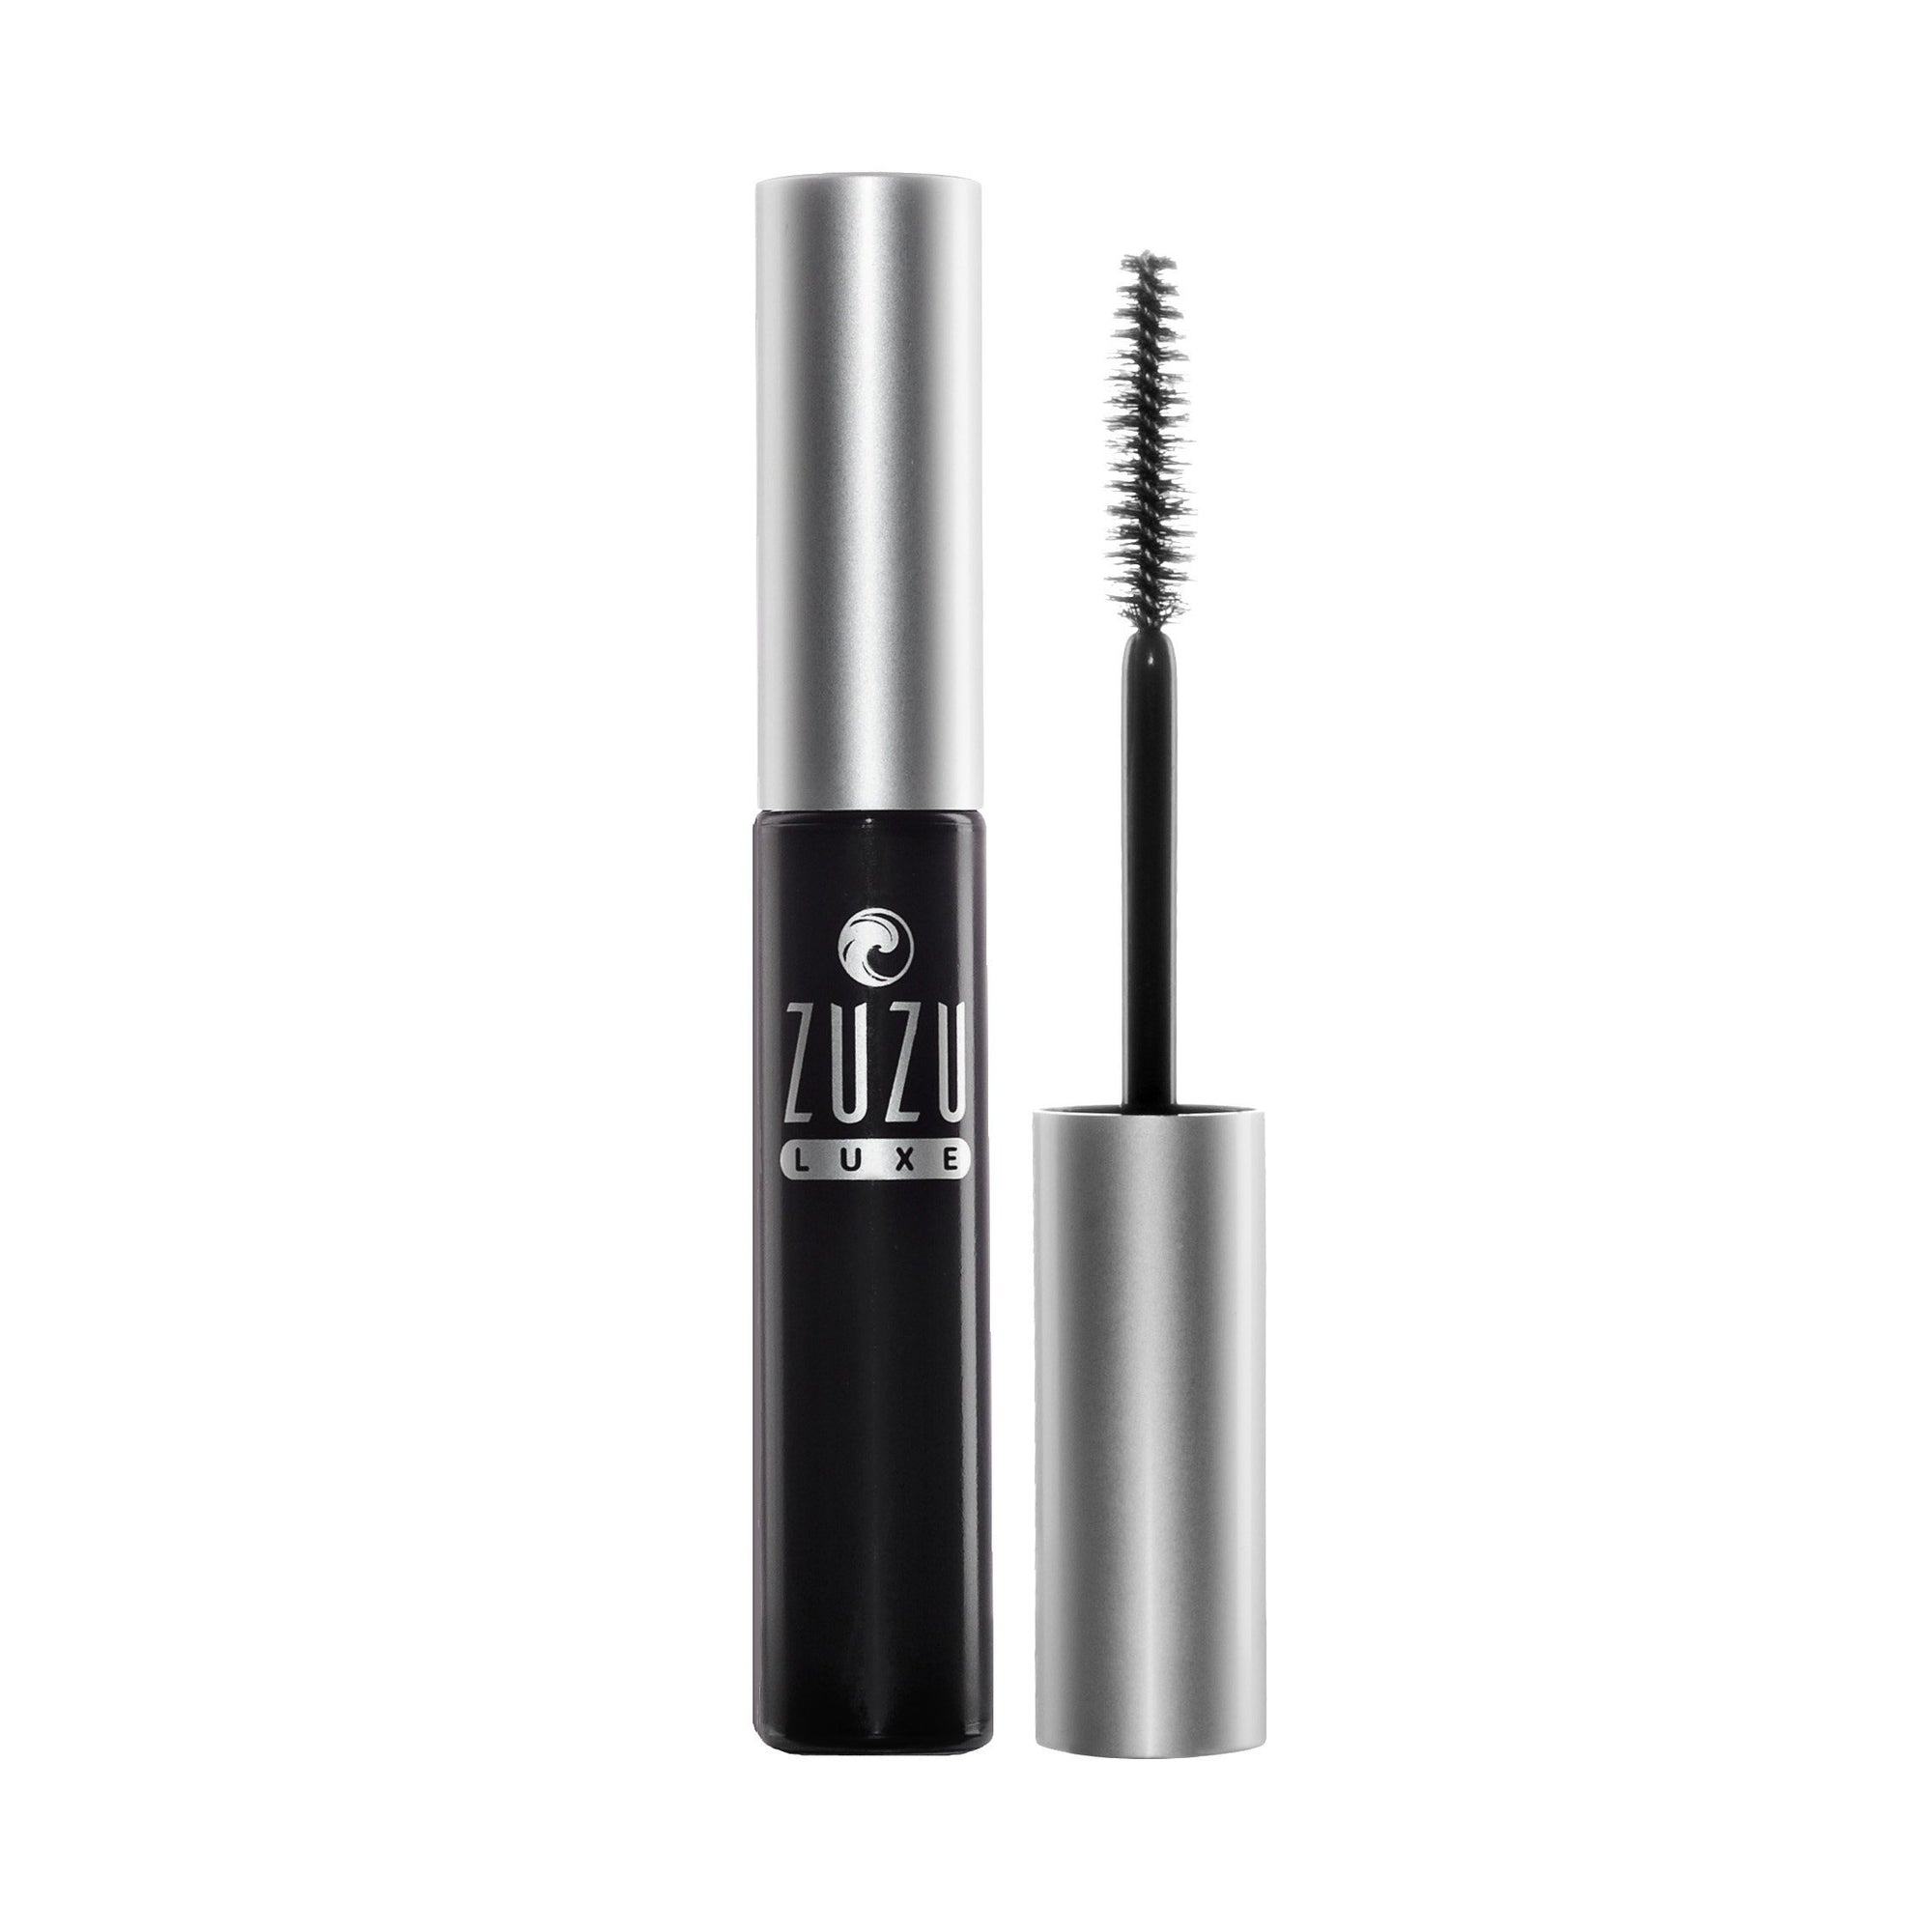 Beauty & Skin Care - Zuzu Luxe - Vegan Mascara, Onyx